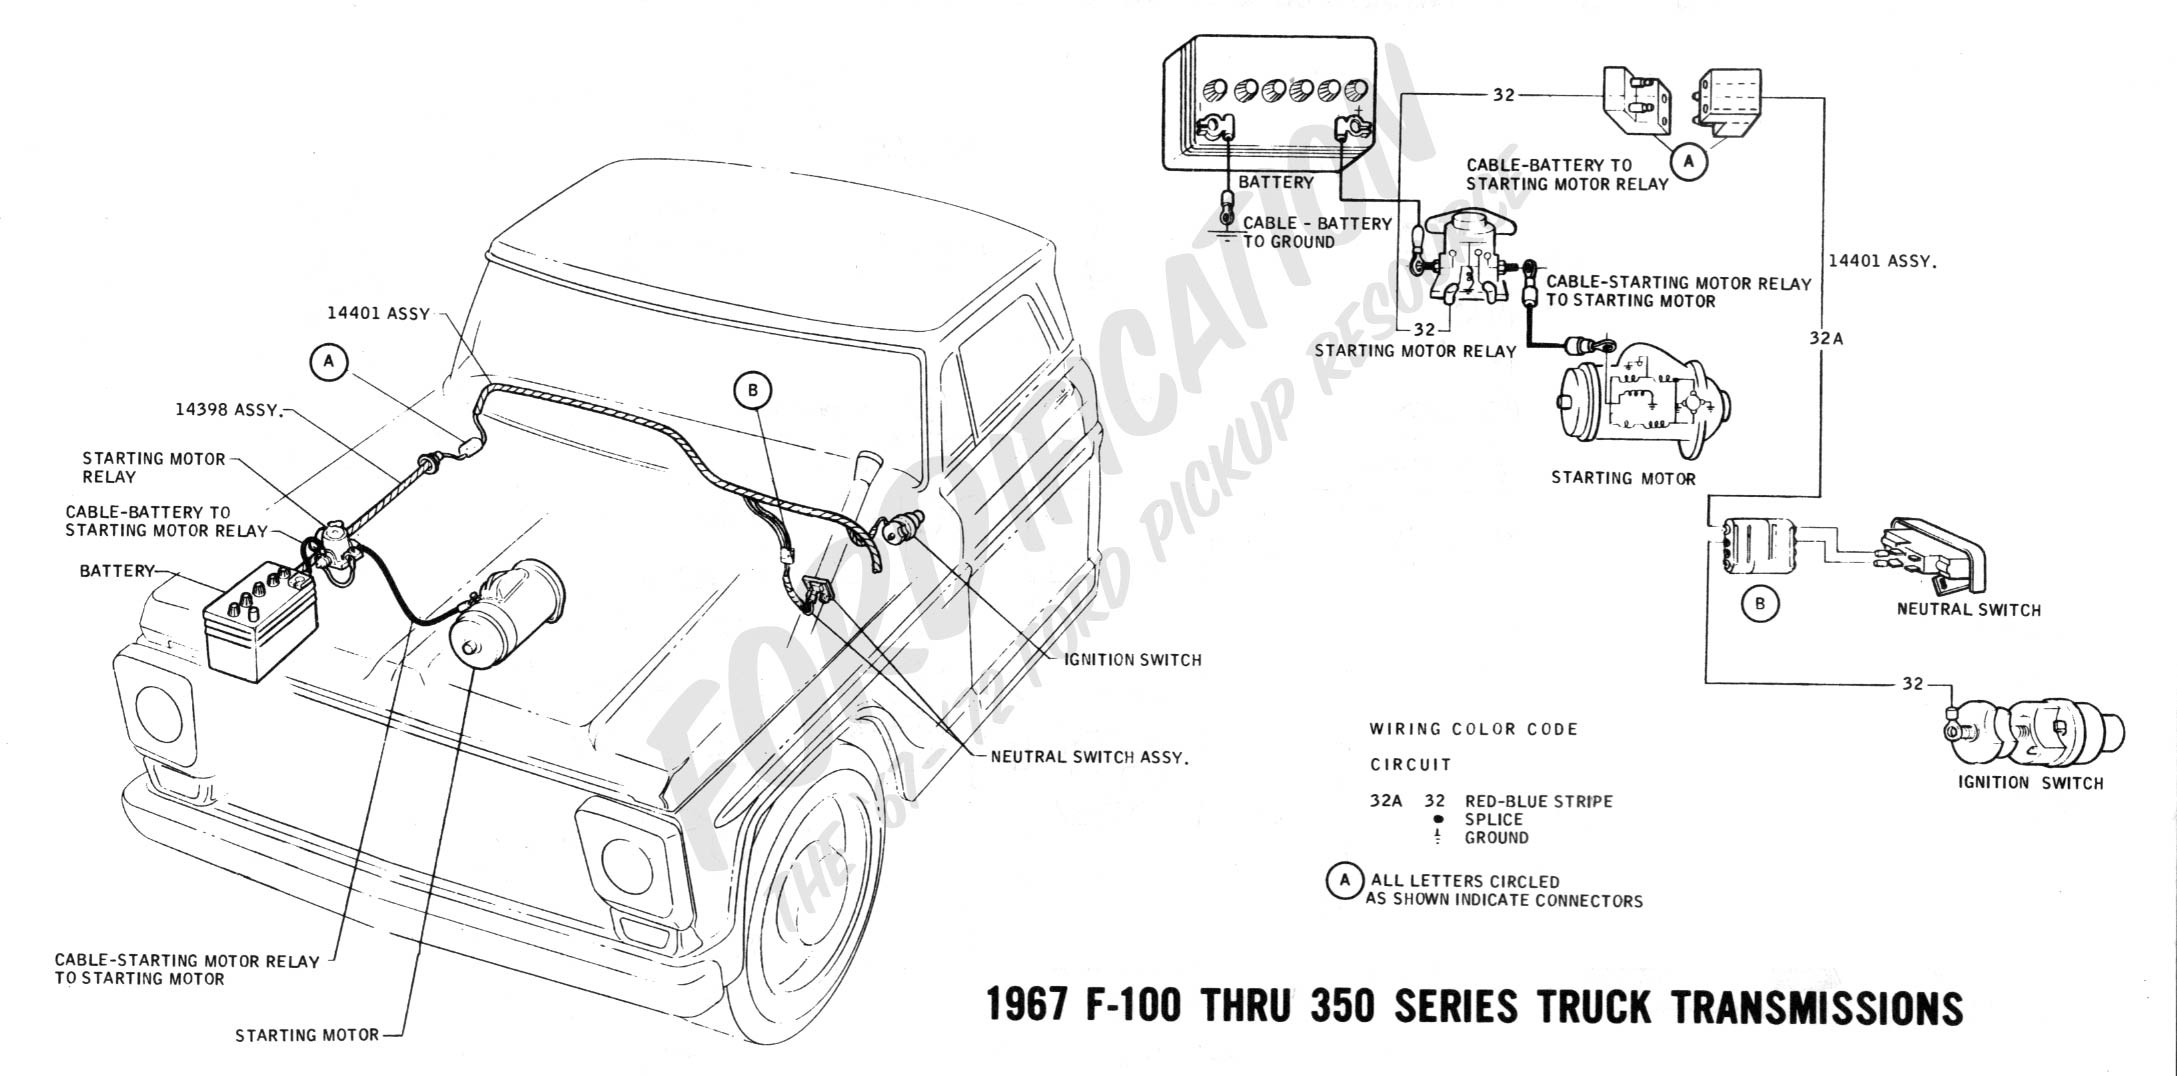 1989 ford 460 engine diagram